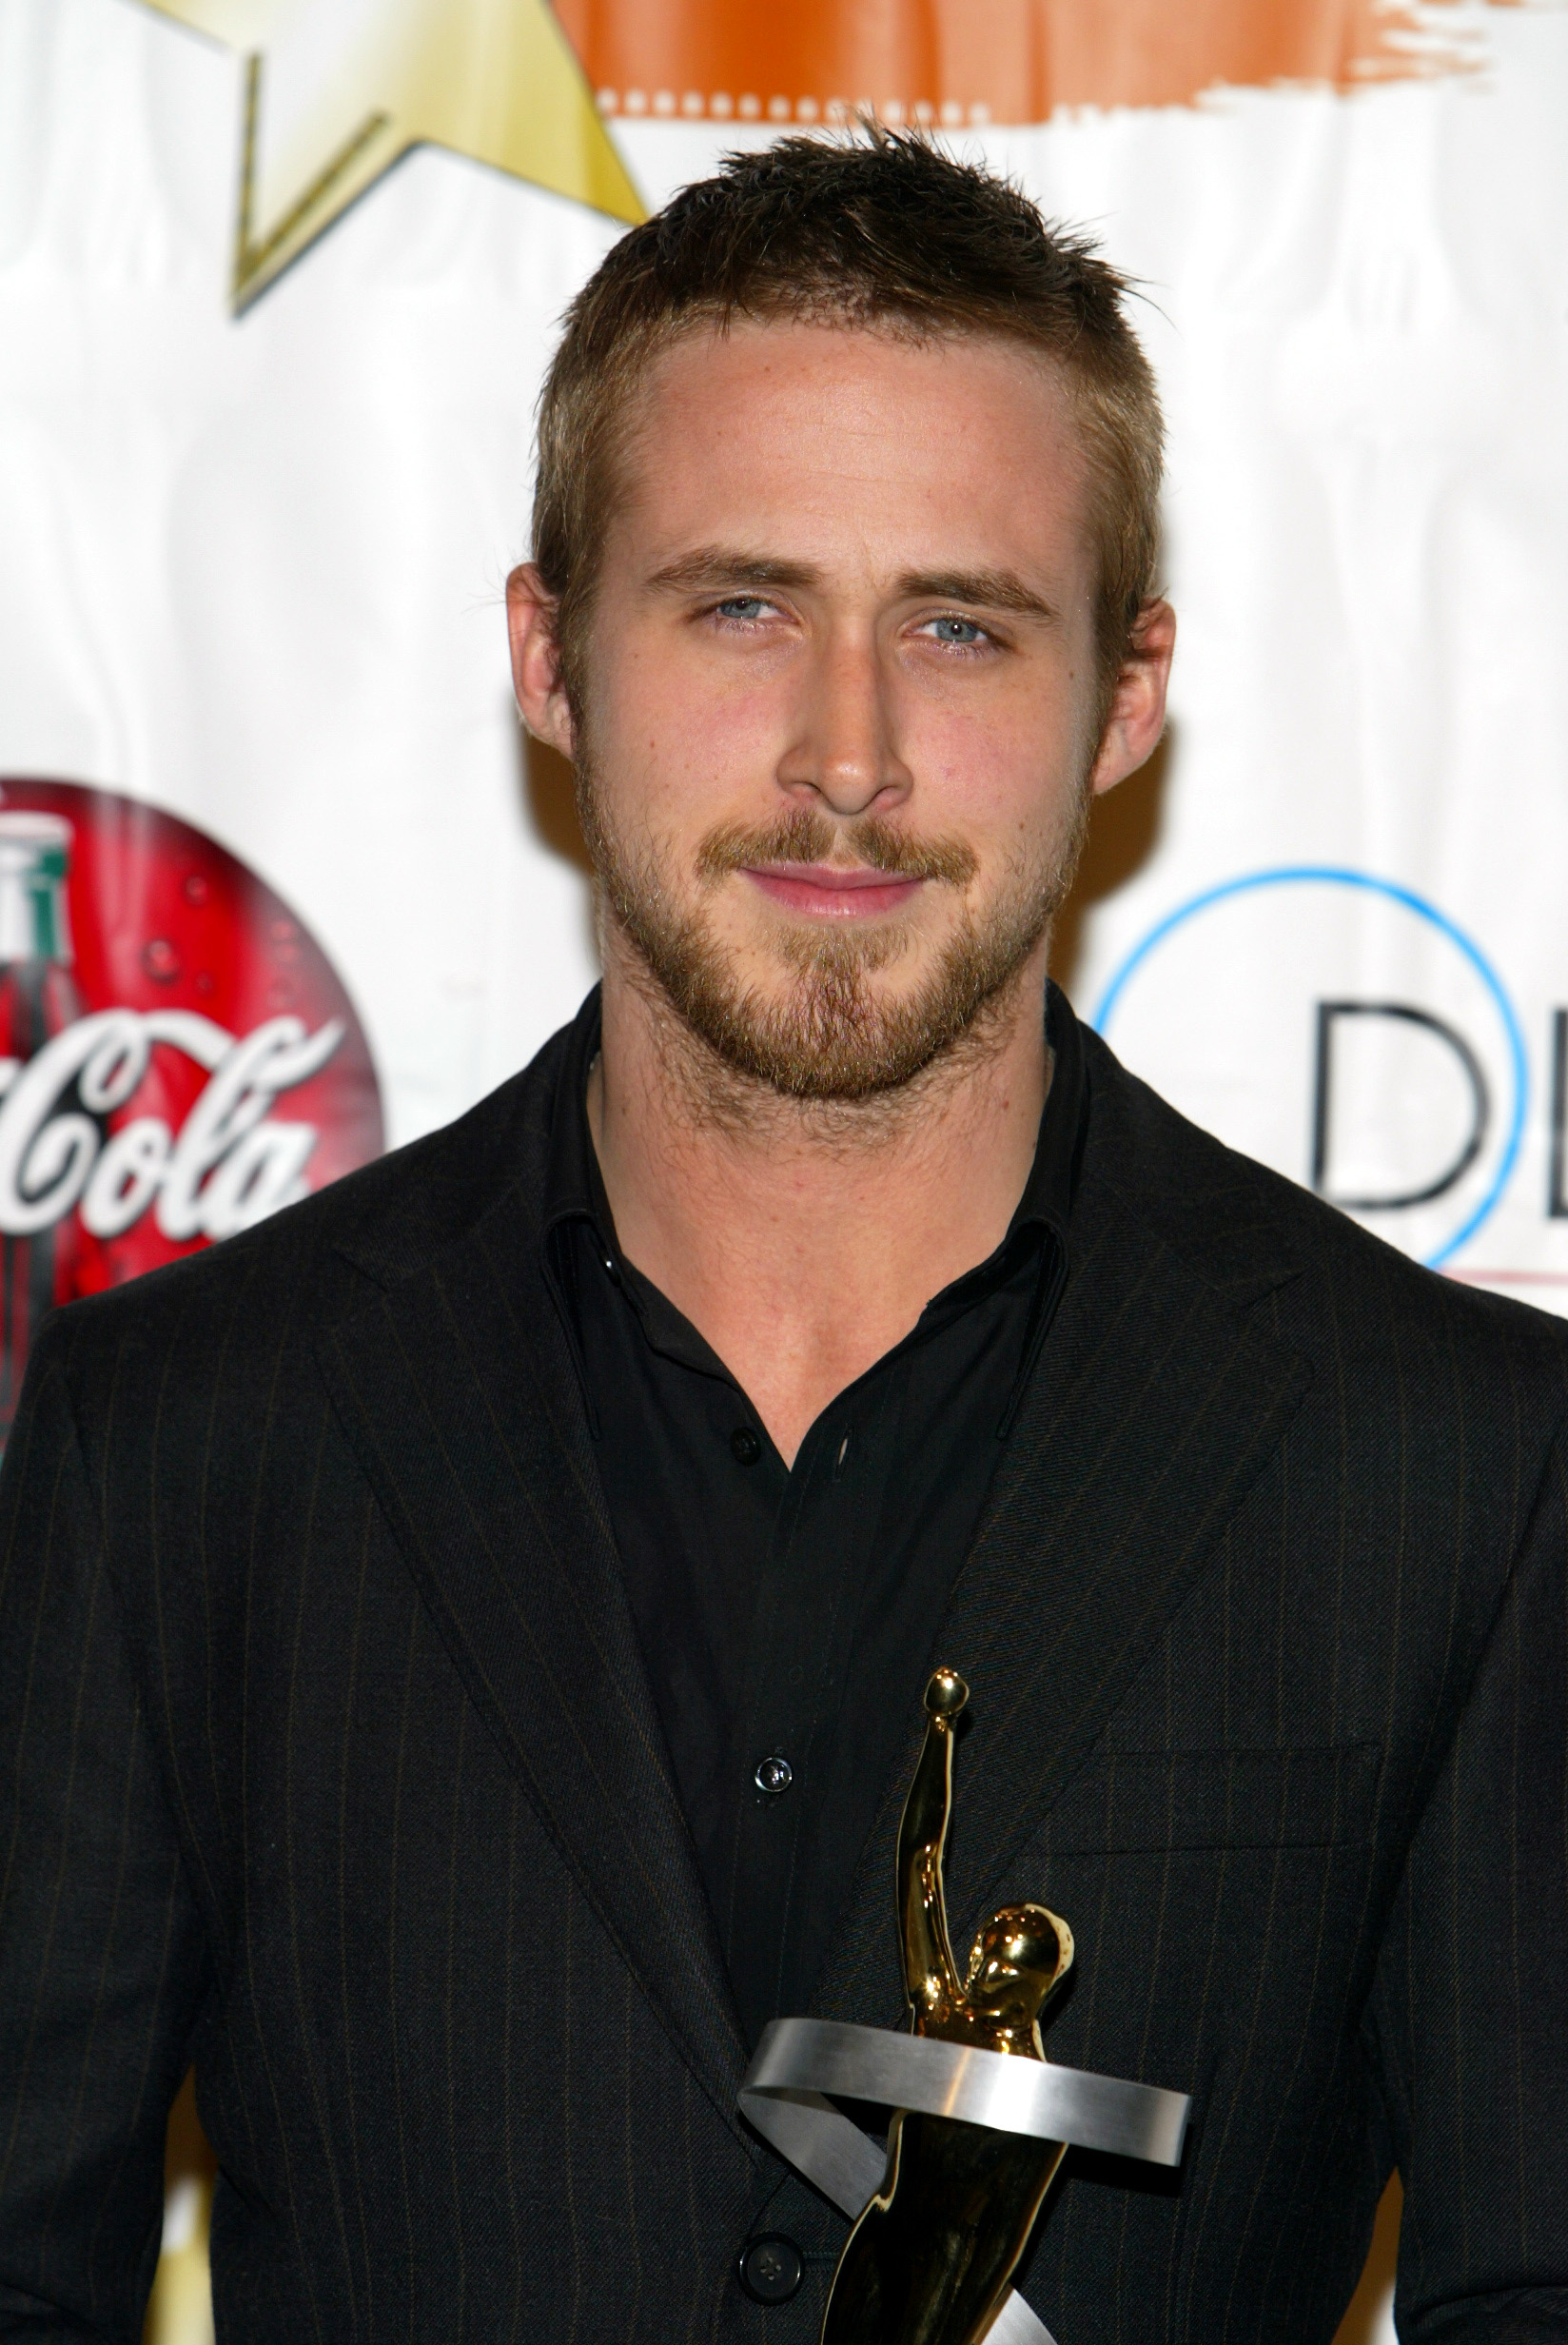 """Ryan Gosling holds his """"Male Star of Tomorrow"""" award at the ShoWest 2004 Gala Awards Banquet held at the Paris Las Vegas Hotel Casino."""